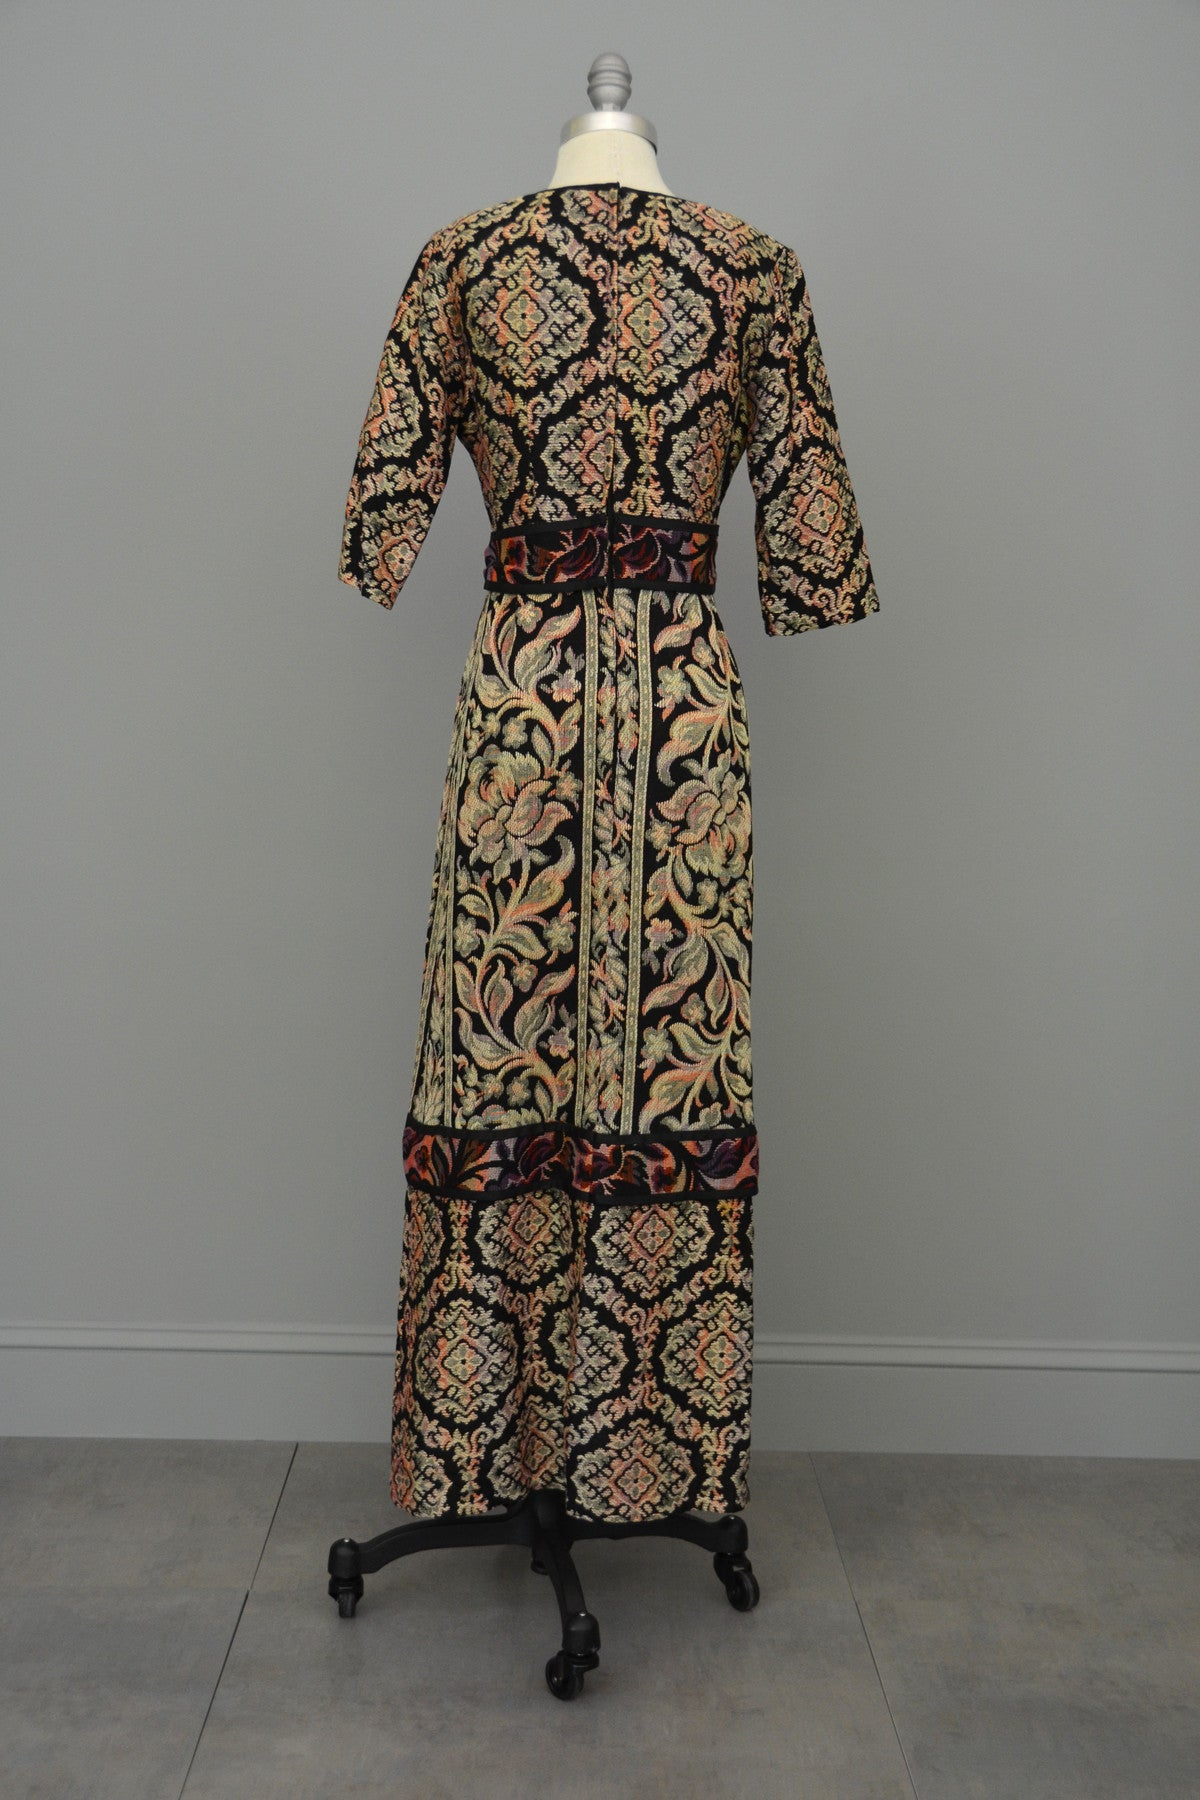 1970s Floral Tapestry Boho Festival Maxi Dress